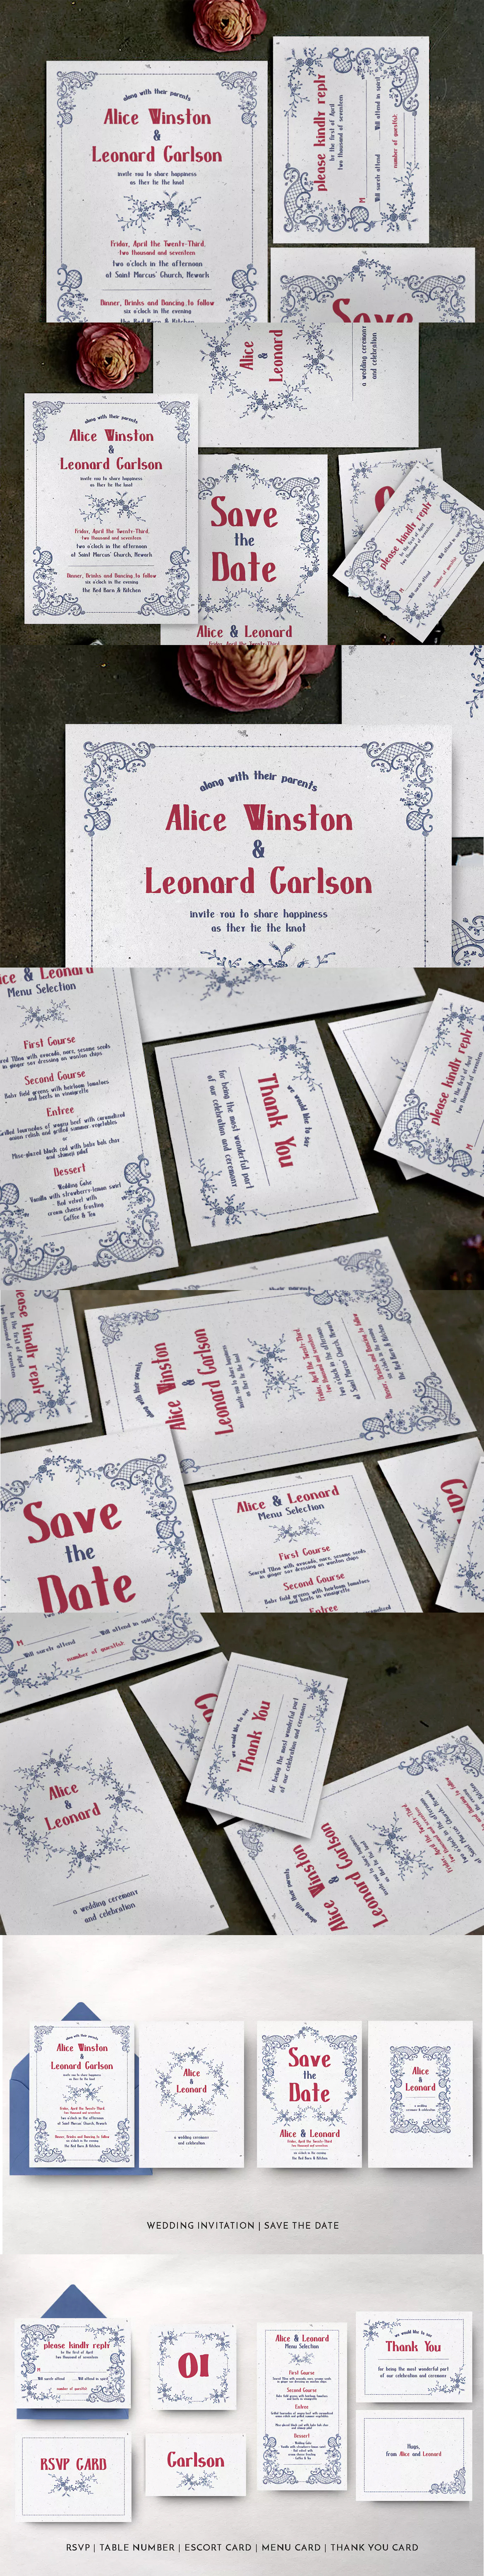 Embroidery Wedding Invitation Template PSD | Wedding Invitation Card ...